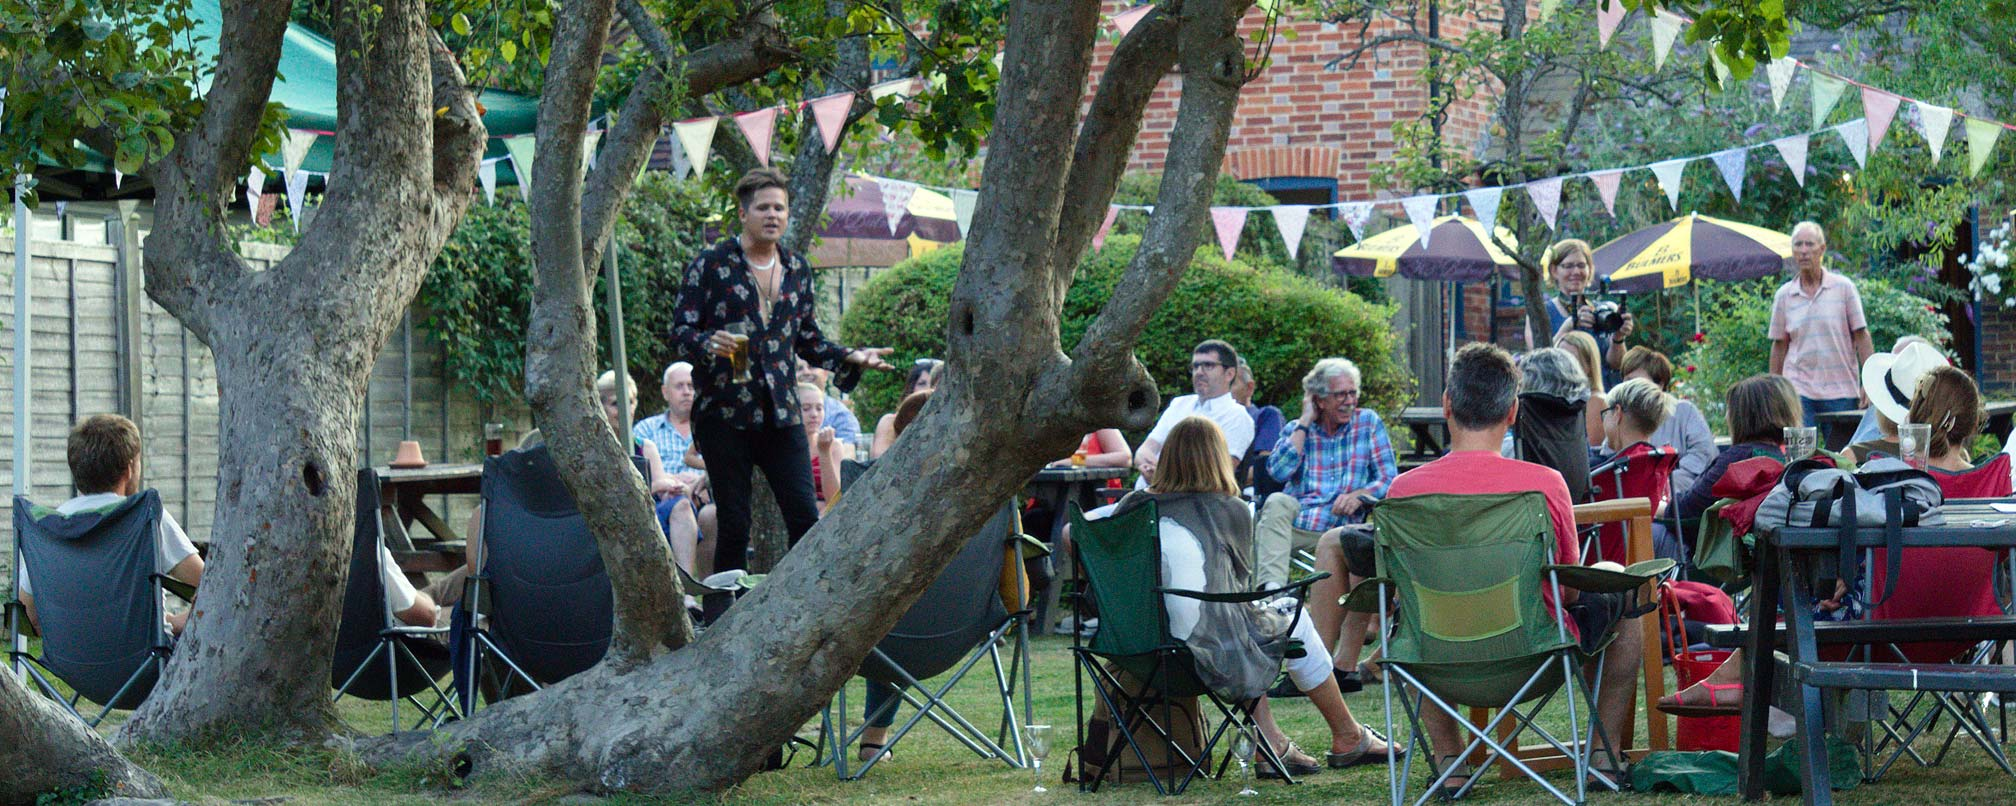 Performer in a pub garden with audience in the summertime